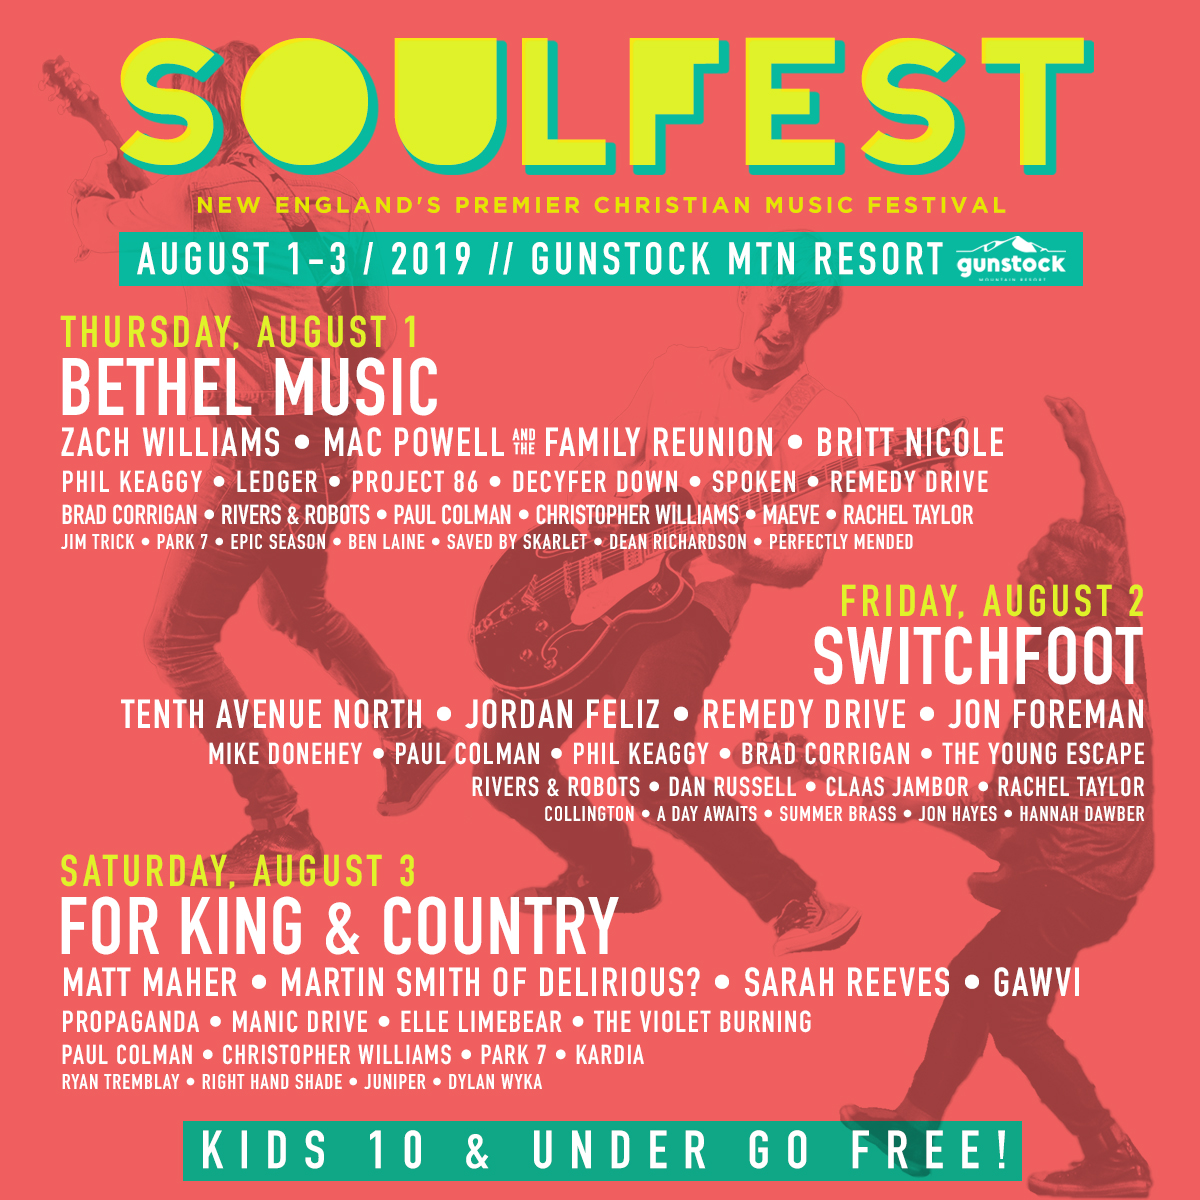 SOulfest promo.png